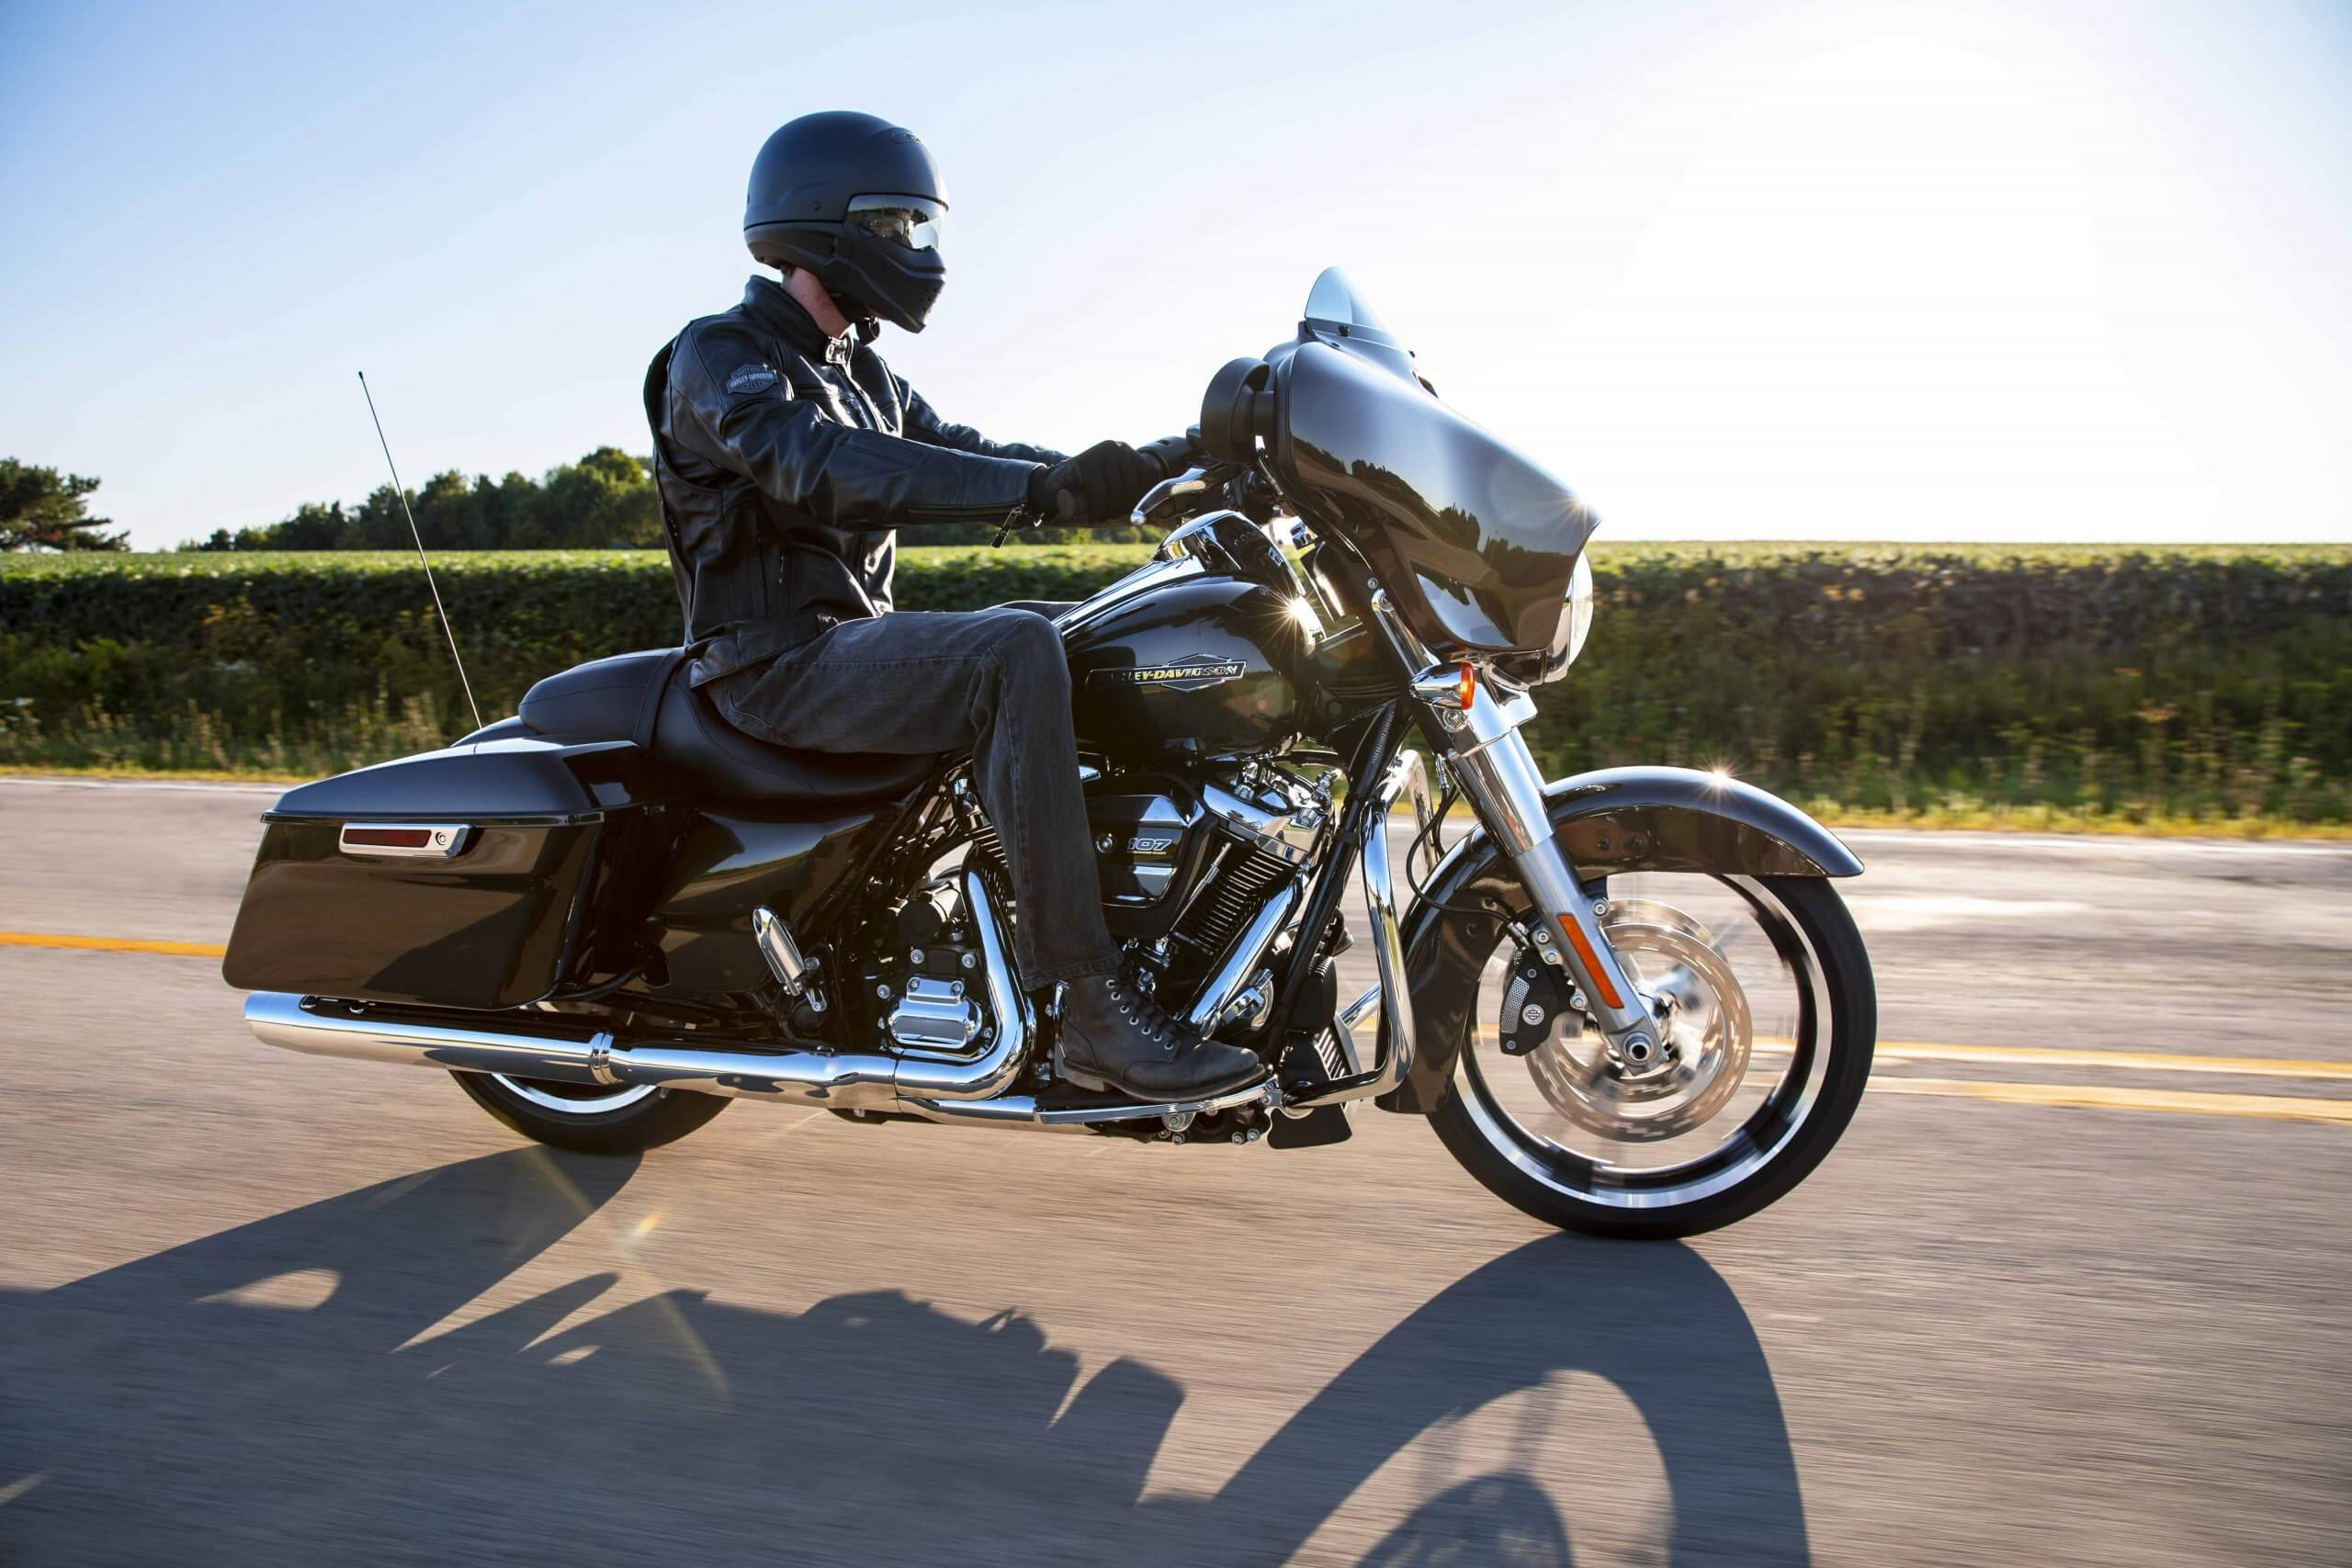 Milwaukee-Eight® 117 V-Twin engine and Fugitive™ wheels